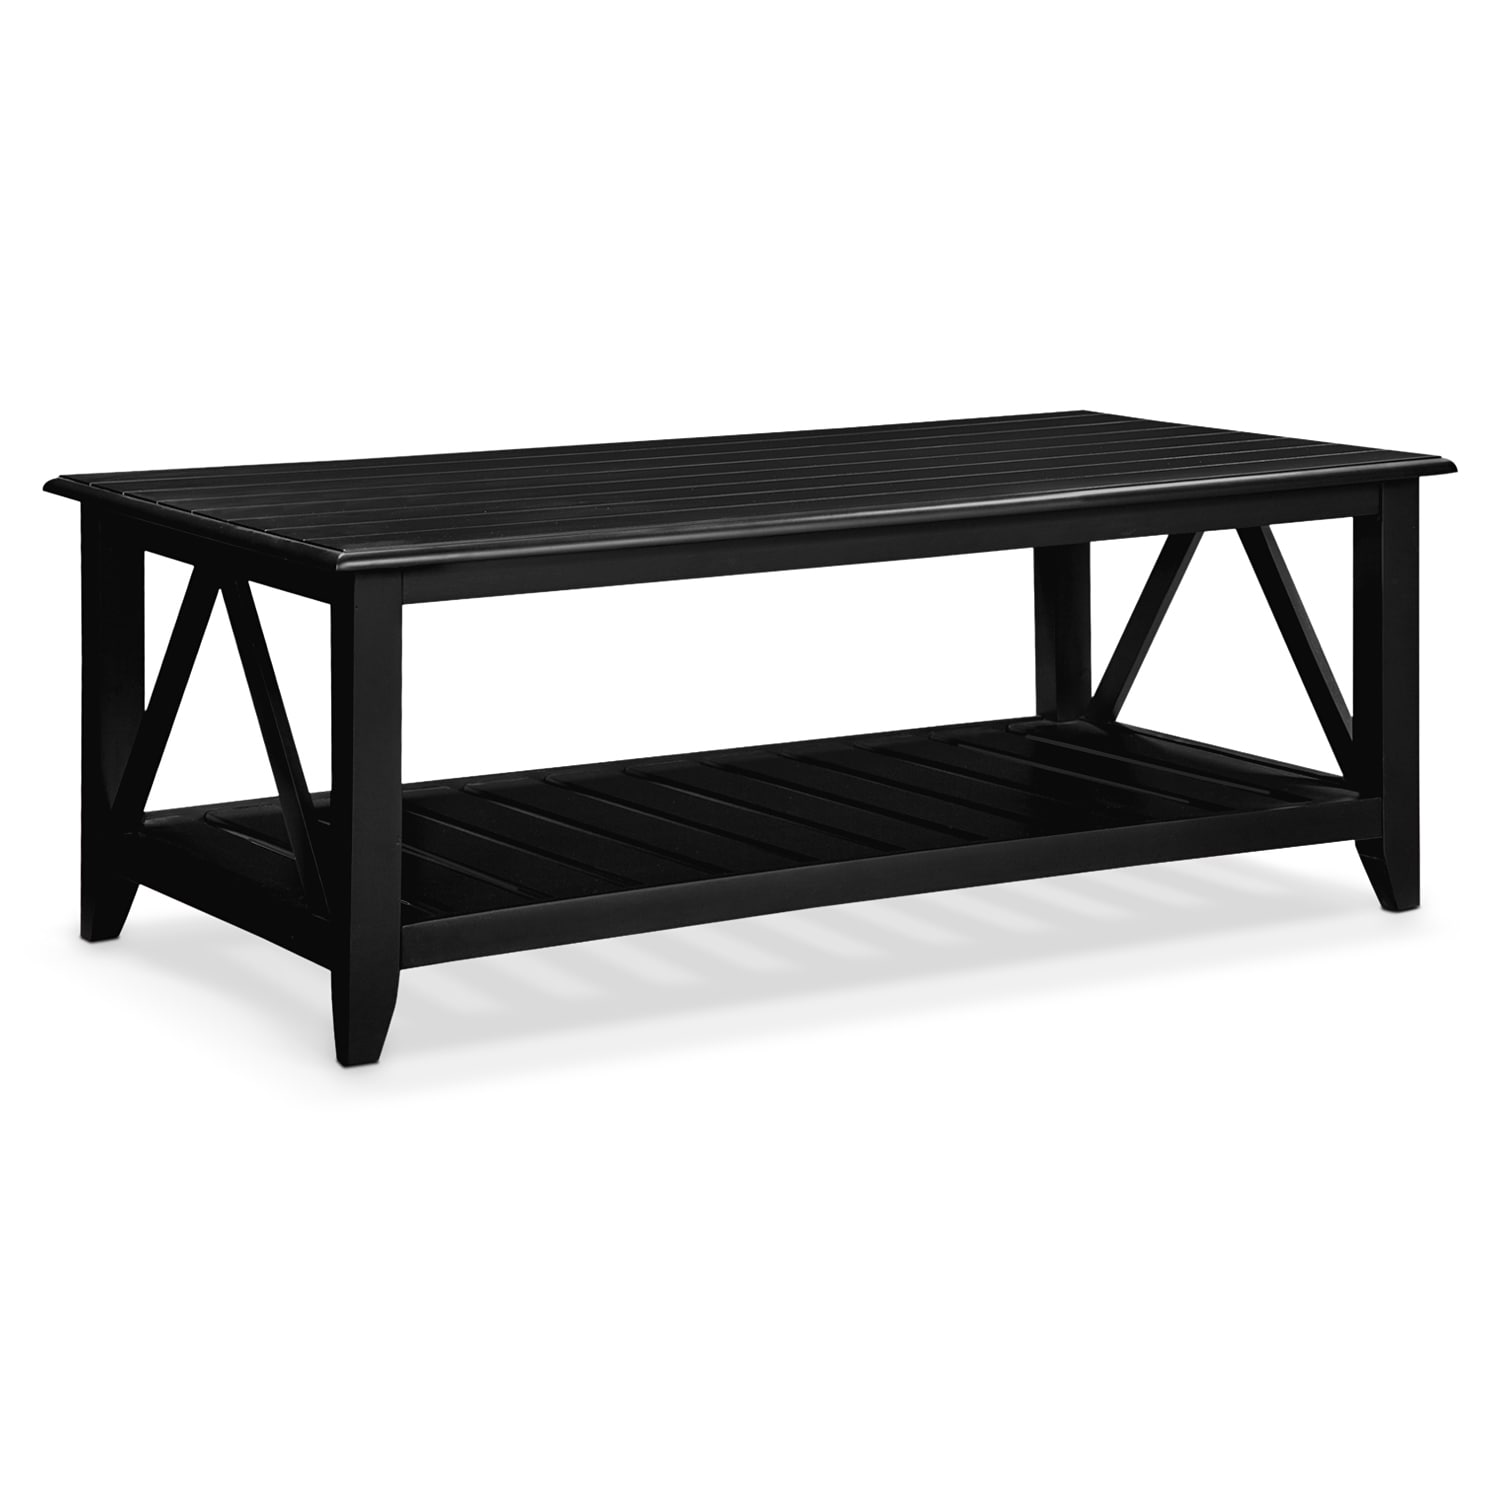 Http Valuecityfurniture Com Accent And Occasional Furniture Occasional Tables Cocktail Tables Plantation Cove Coastal Black Cocktail Table 1584990 Aspx